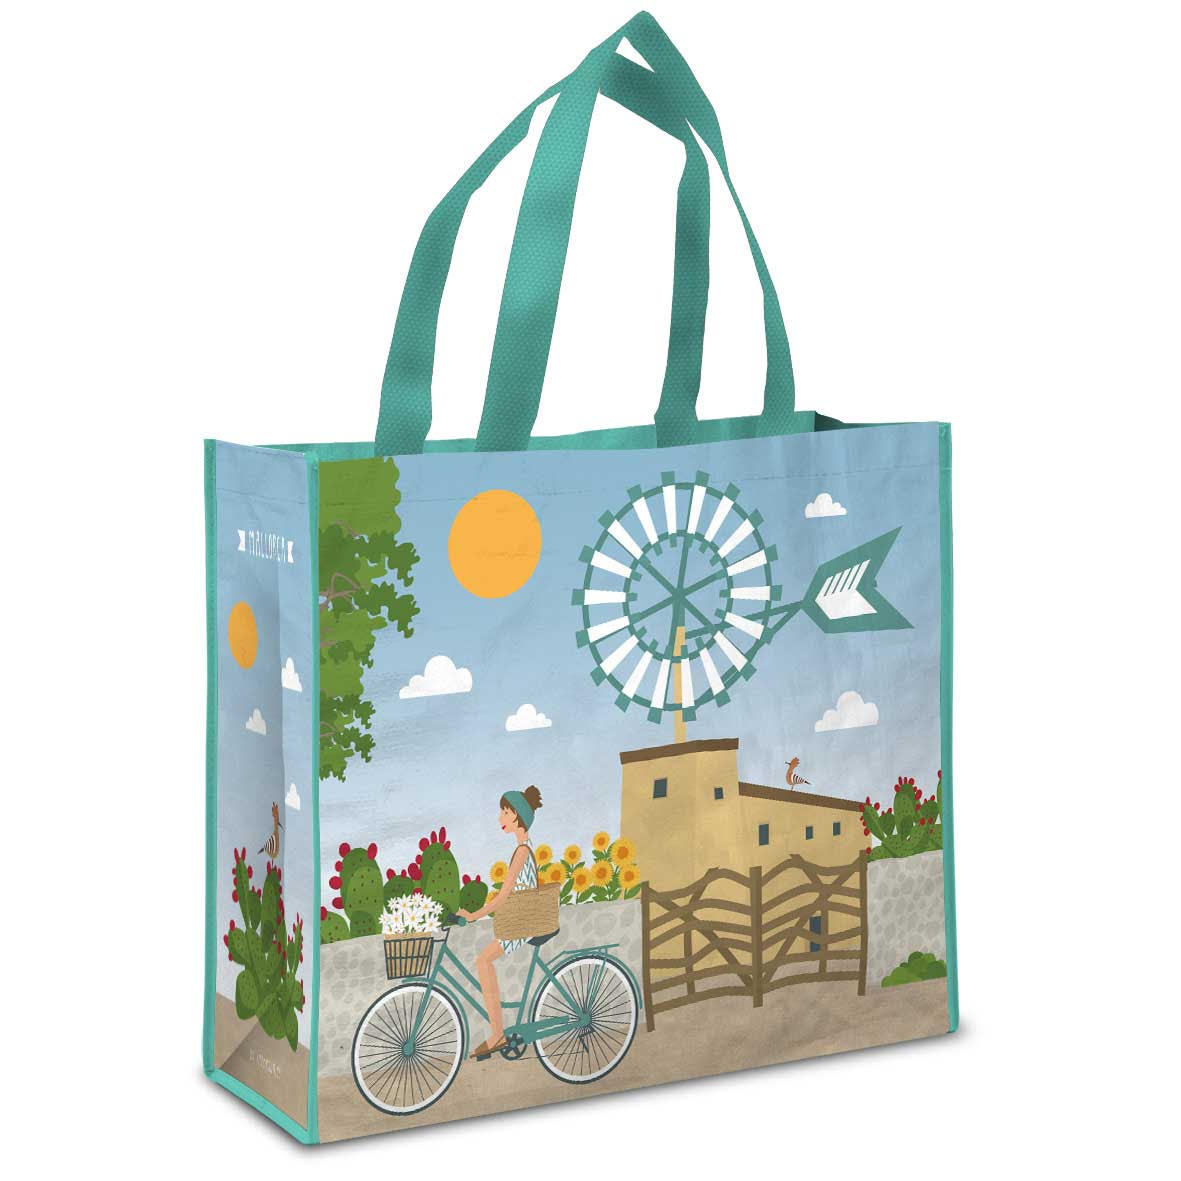 souvenir_mallorca_shopping_bag_santanyi